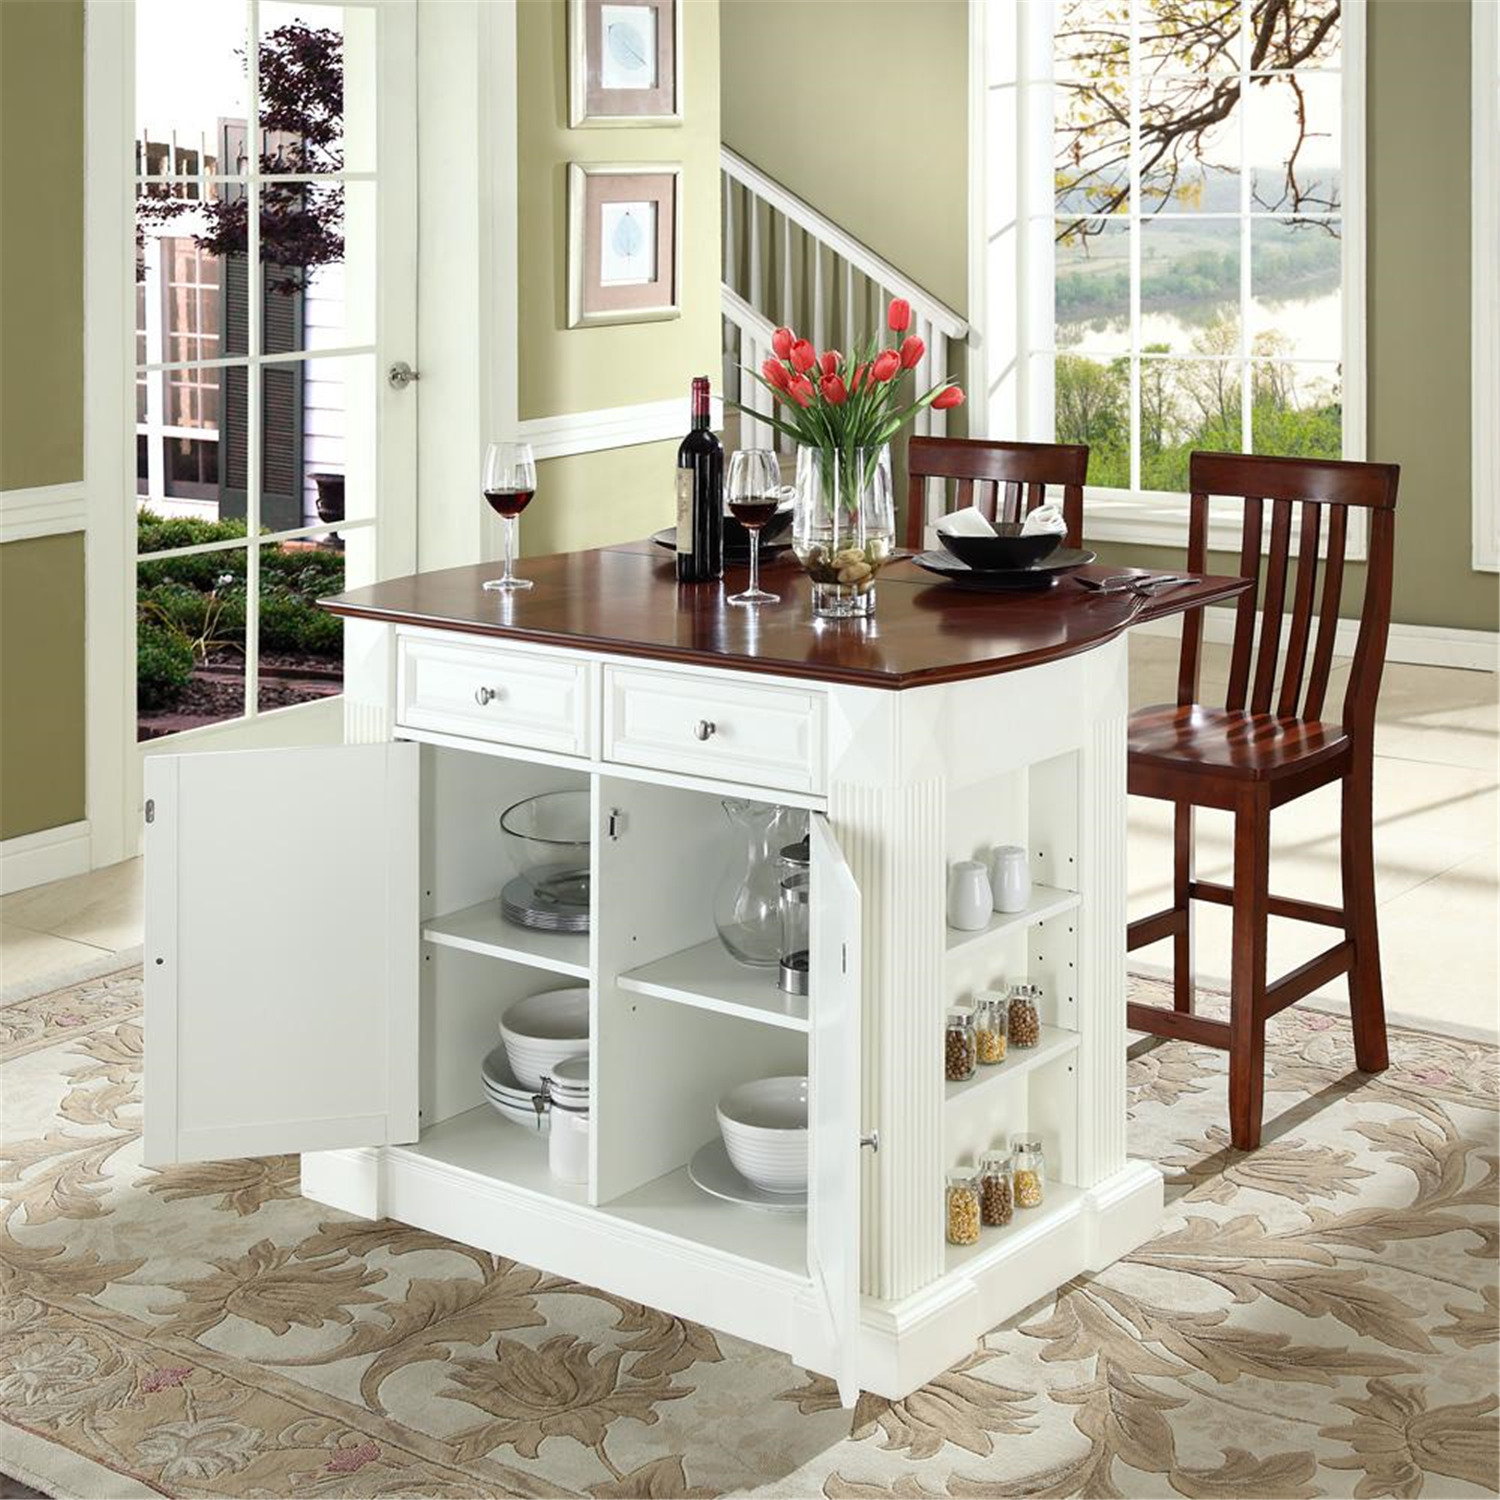 kitchen island with drop leaf breakfast bar crosley drop leaf breakfast bar top kitchen island with 24 27871